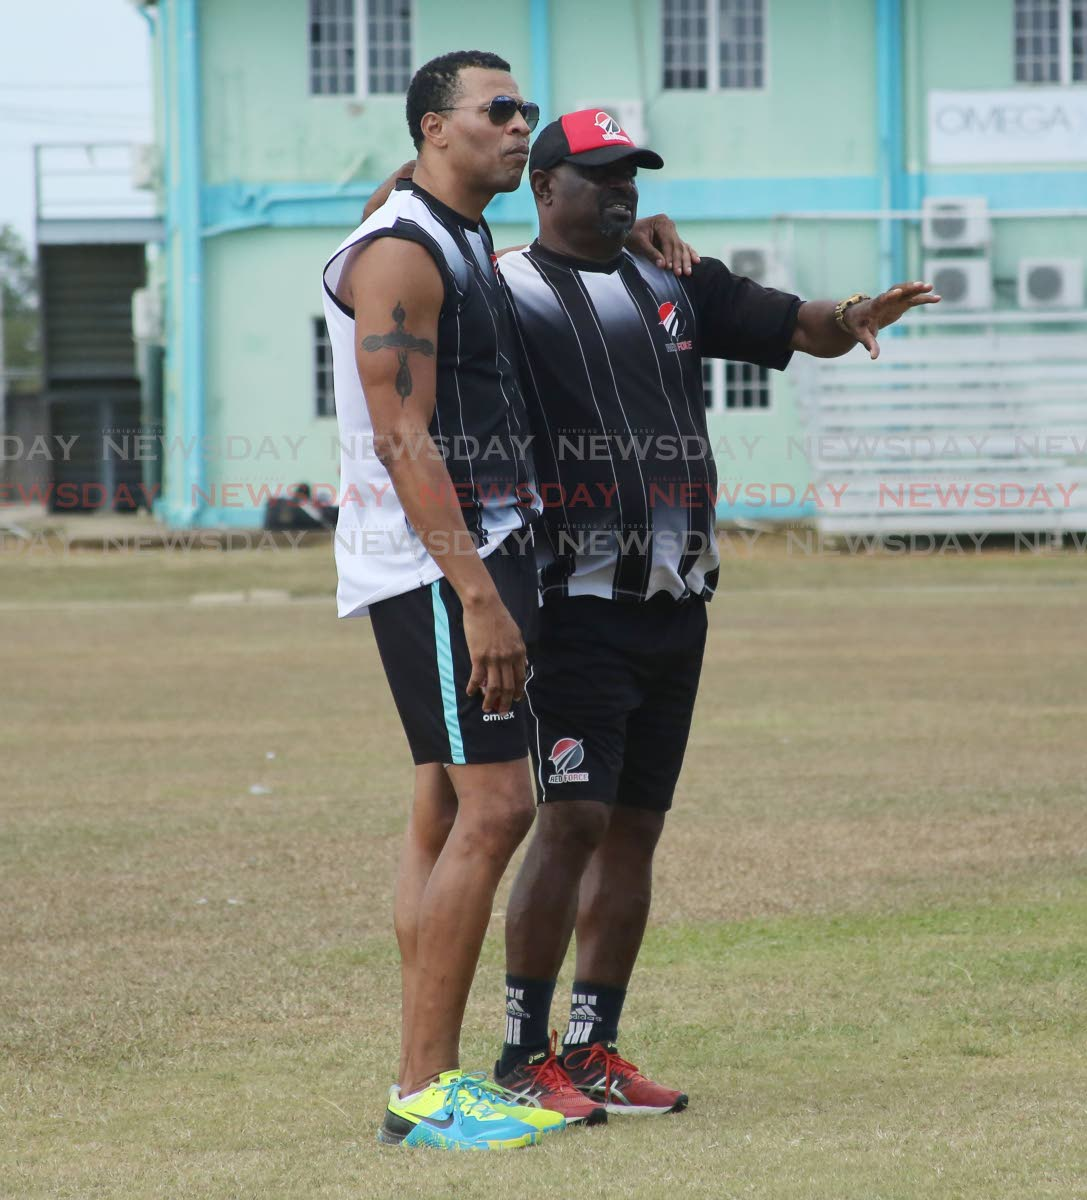 HELPING HAND: Former West Indies pacer and new Red Force assistant coach Mervyn Dillon, left, observes a training session alongside head coach Kelvin Williams, right, at the National Cricket Centre, Couva, yesterday. PHOTO BY VASHTI SINGH